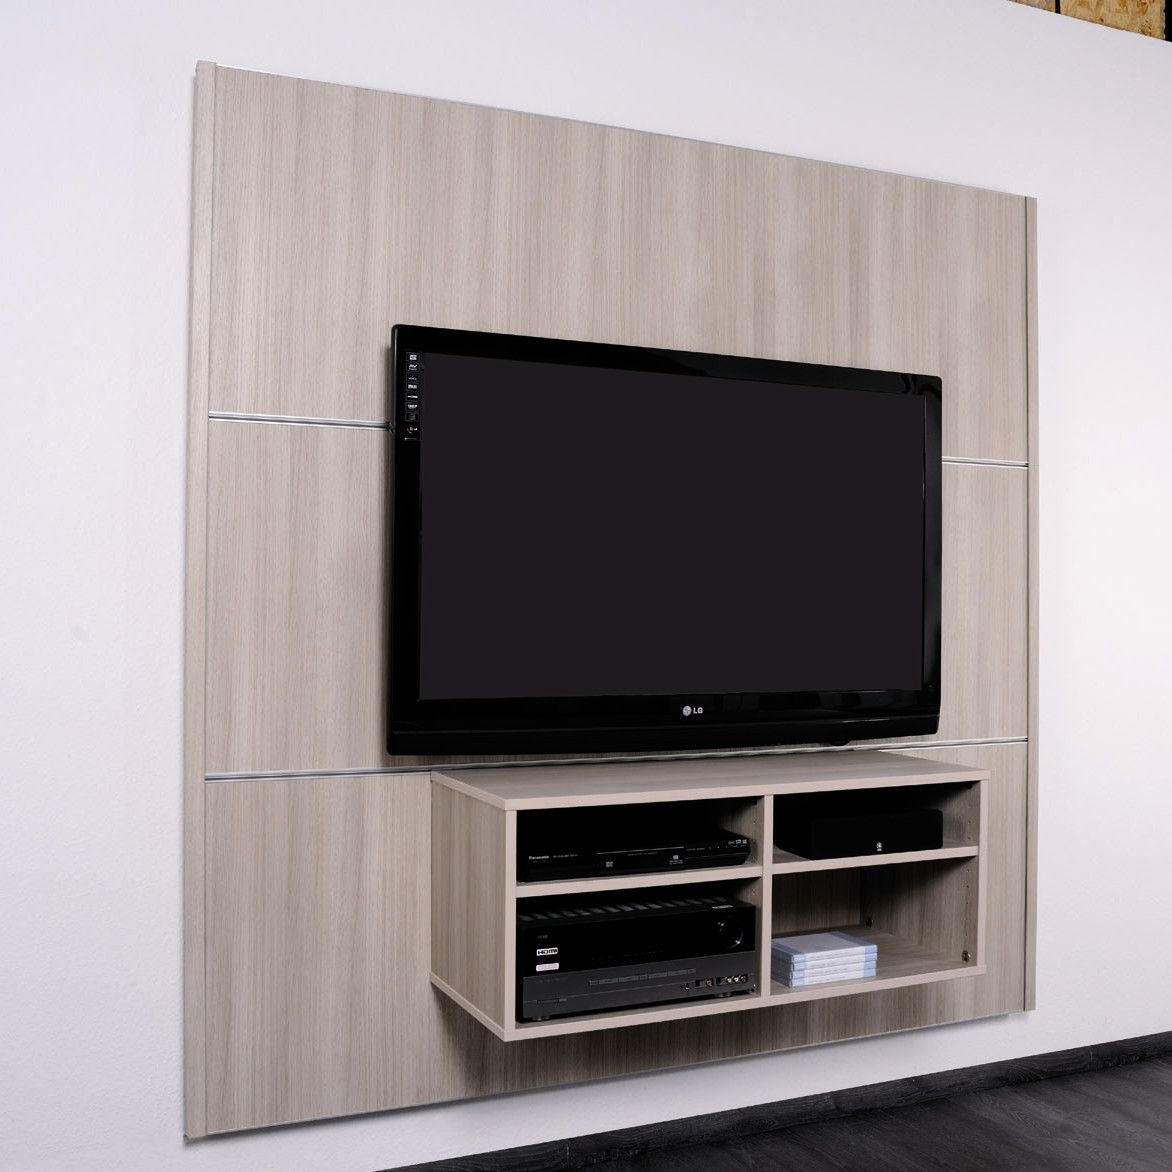 Cinewall Tv Paneel Cinewall Wall Mounted Tv Stand Ideas For The House Wall